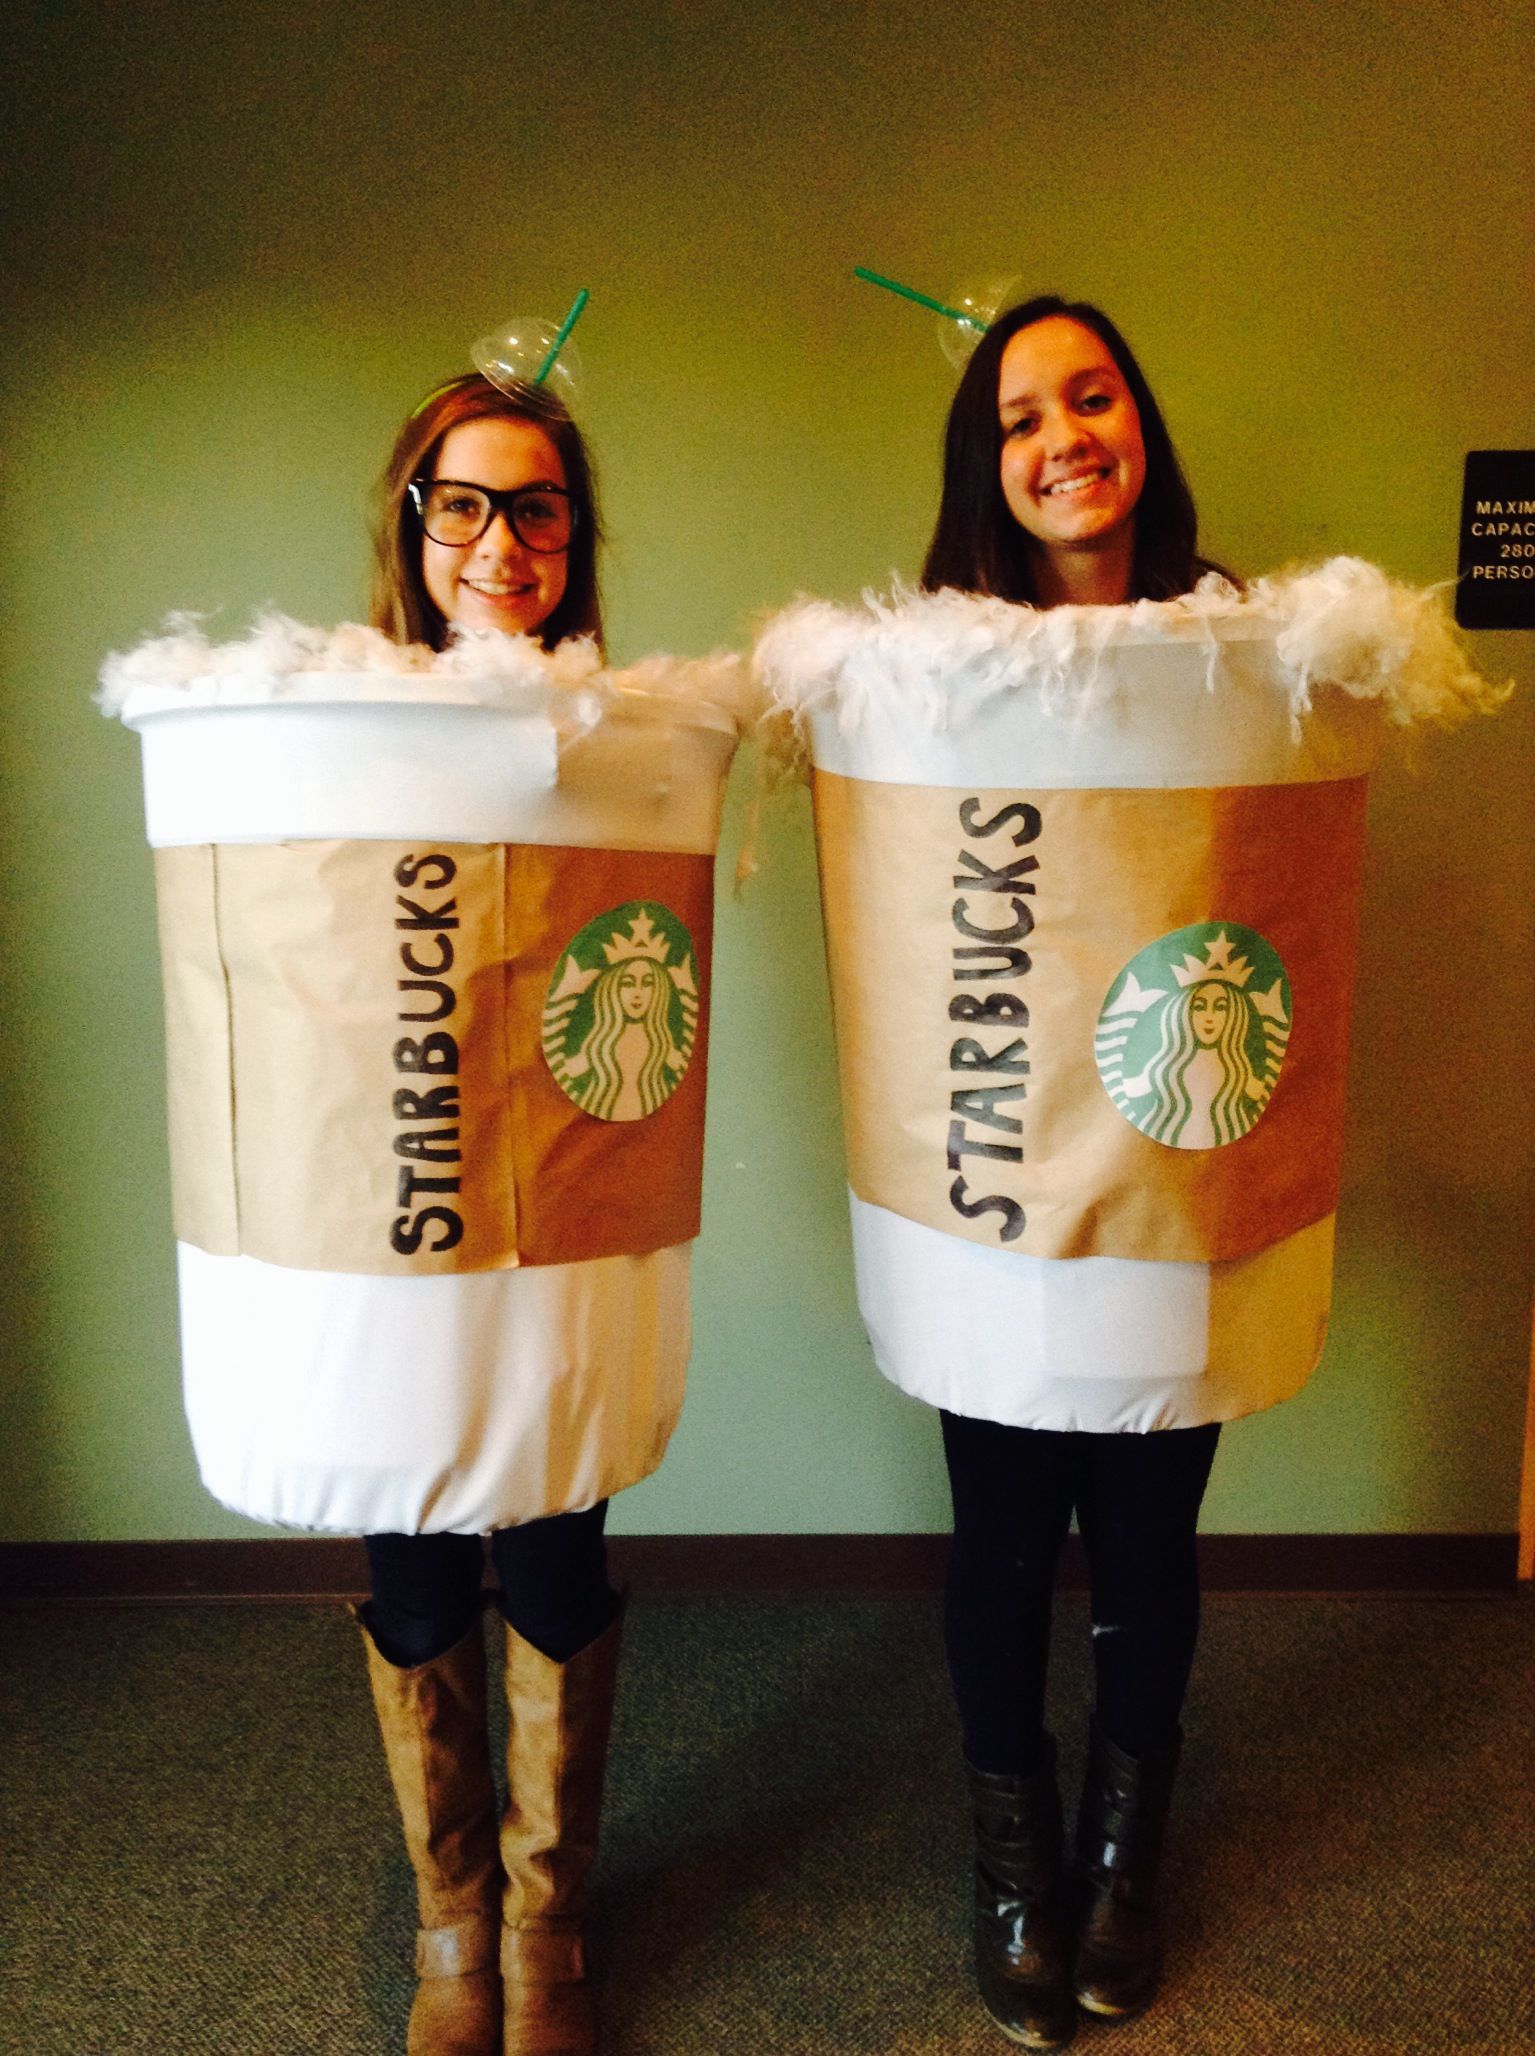 Starbucks Halloween costume idea! Made with a plastic